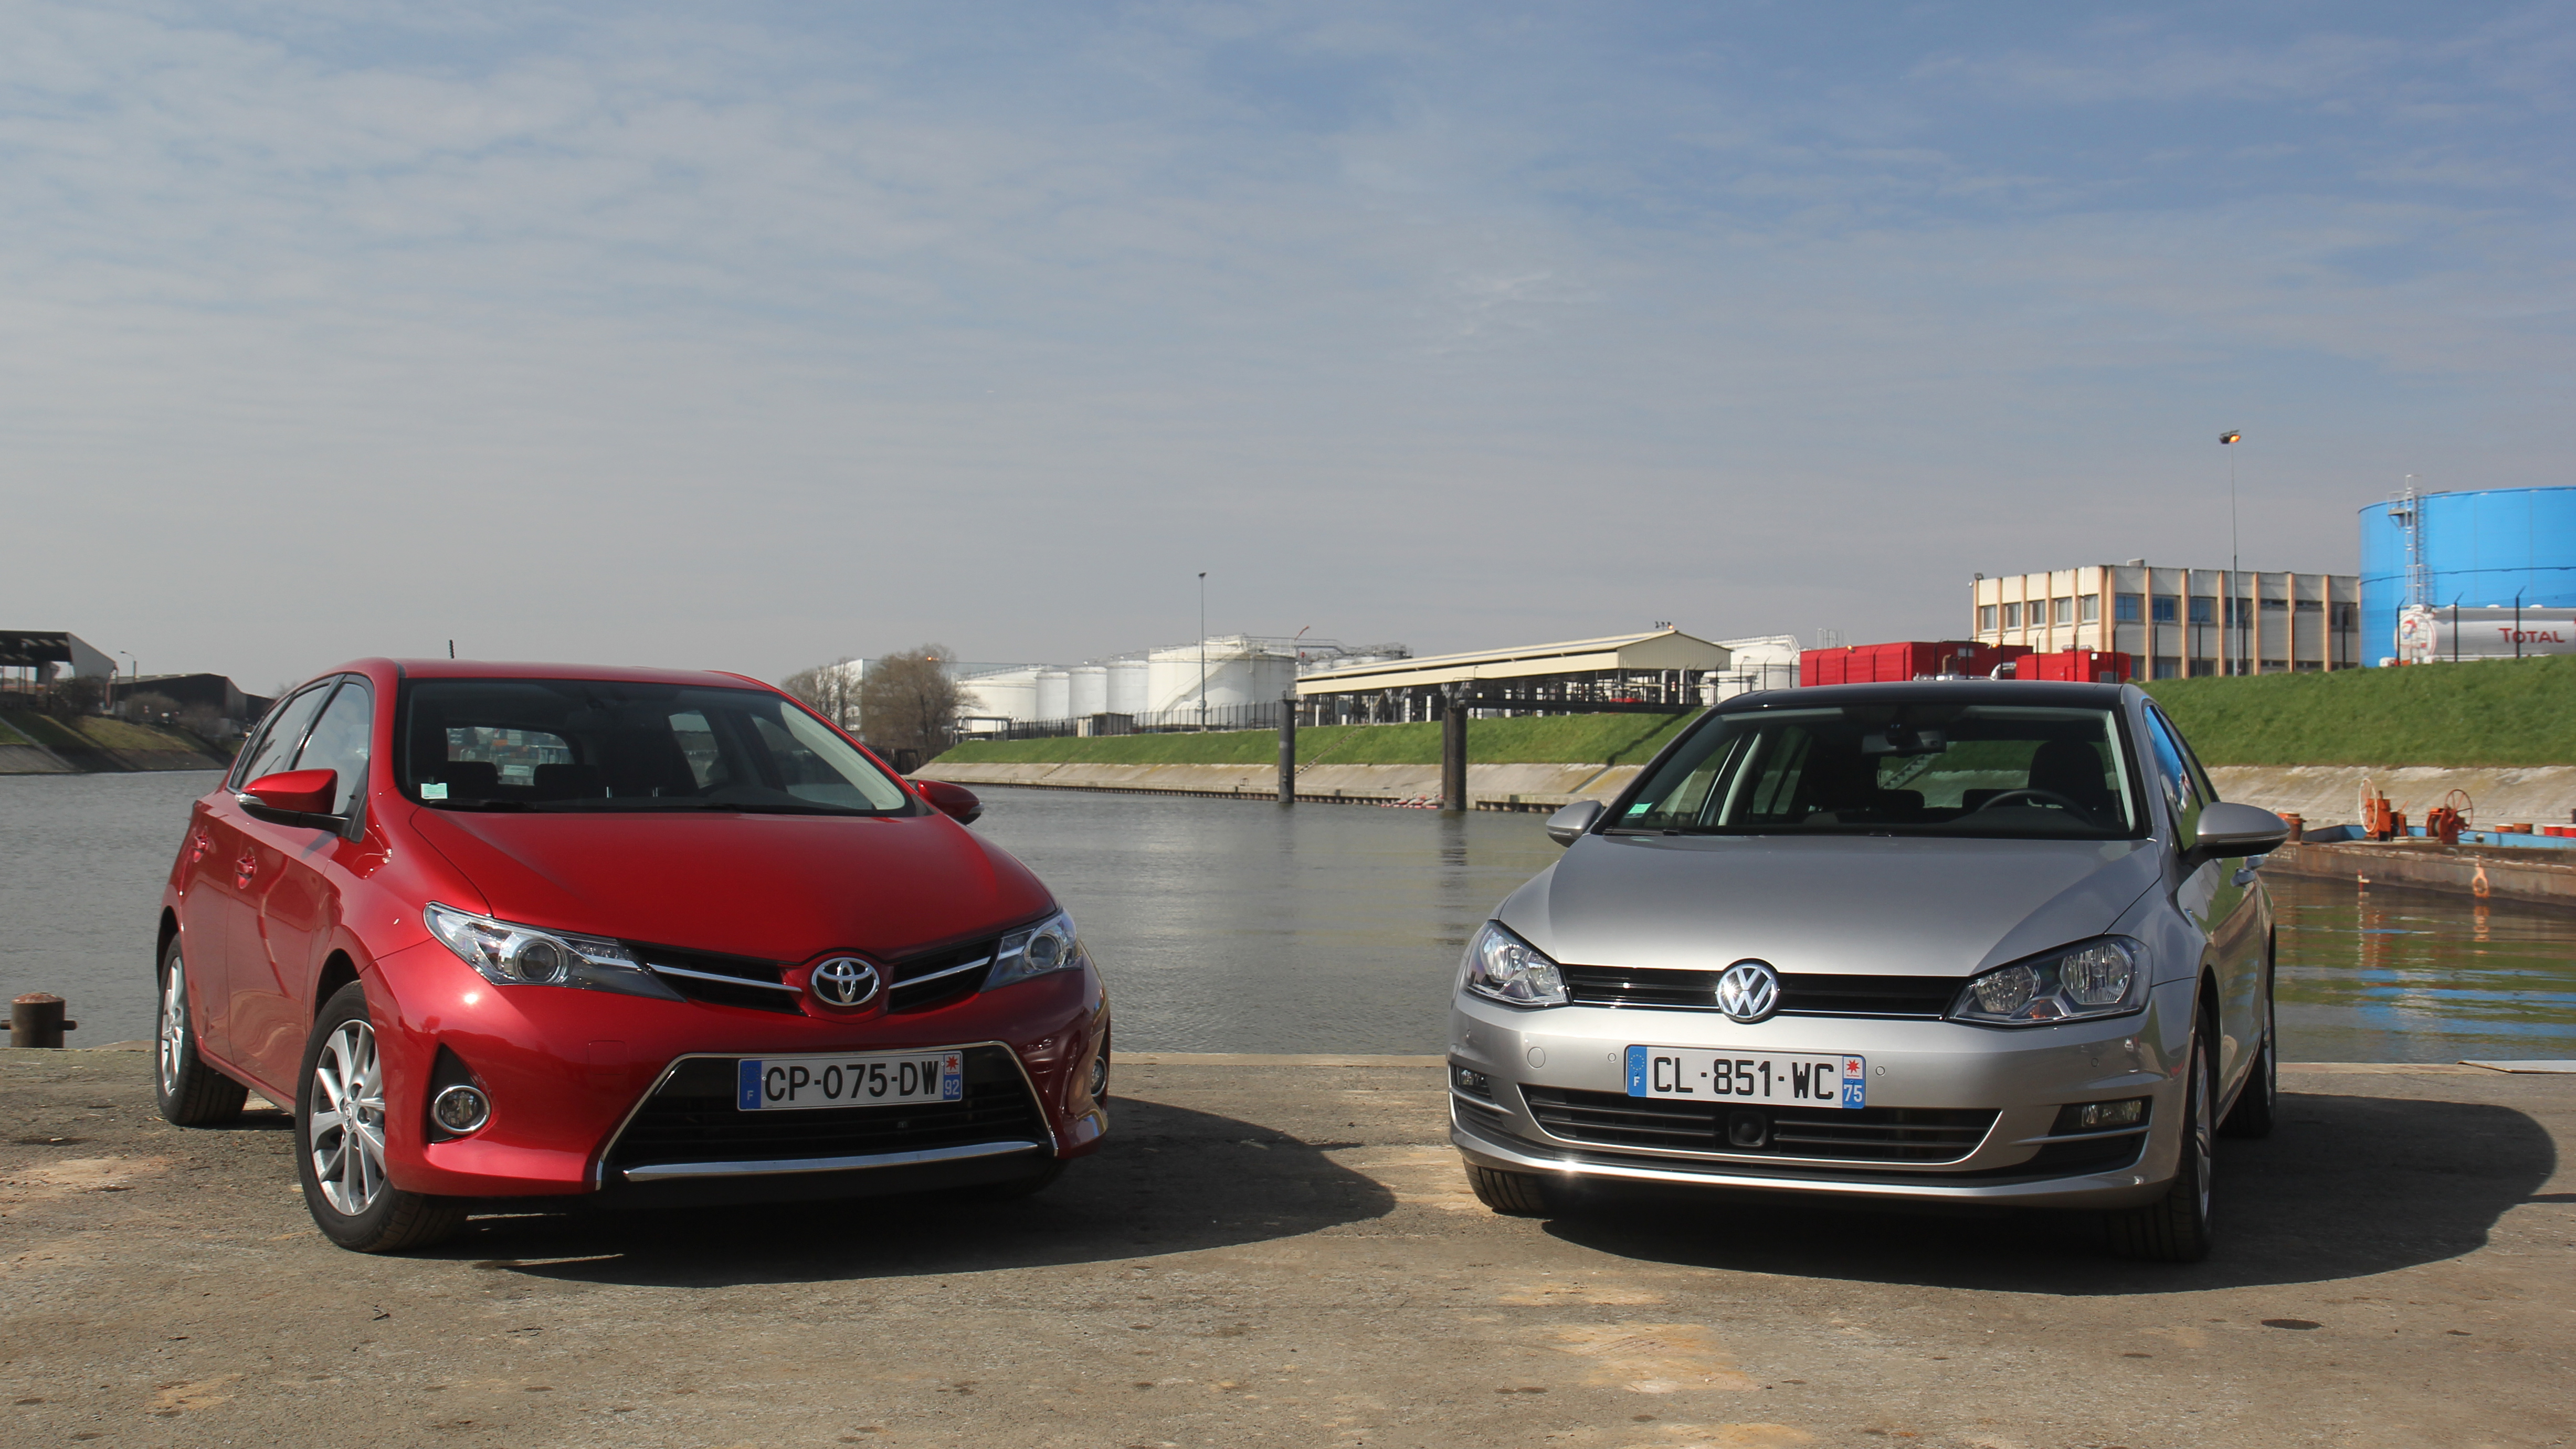 comparatif vid o volkswagen golf vs toyota auris une place sur le tr ne. Black Bedroom Furniture Sets. Home Design Ideas